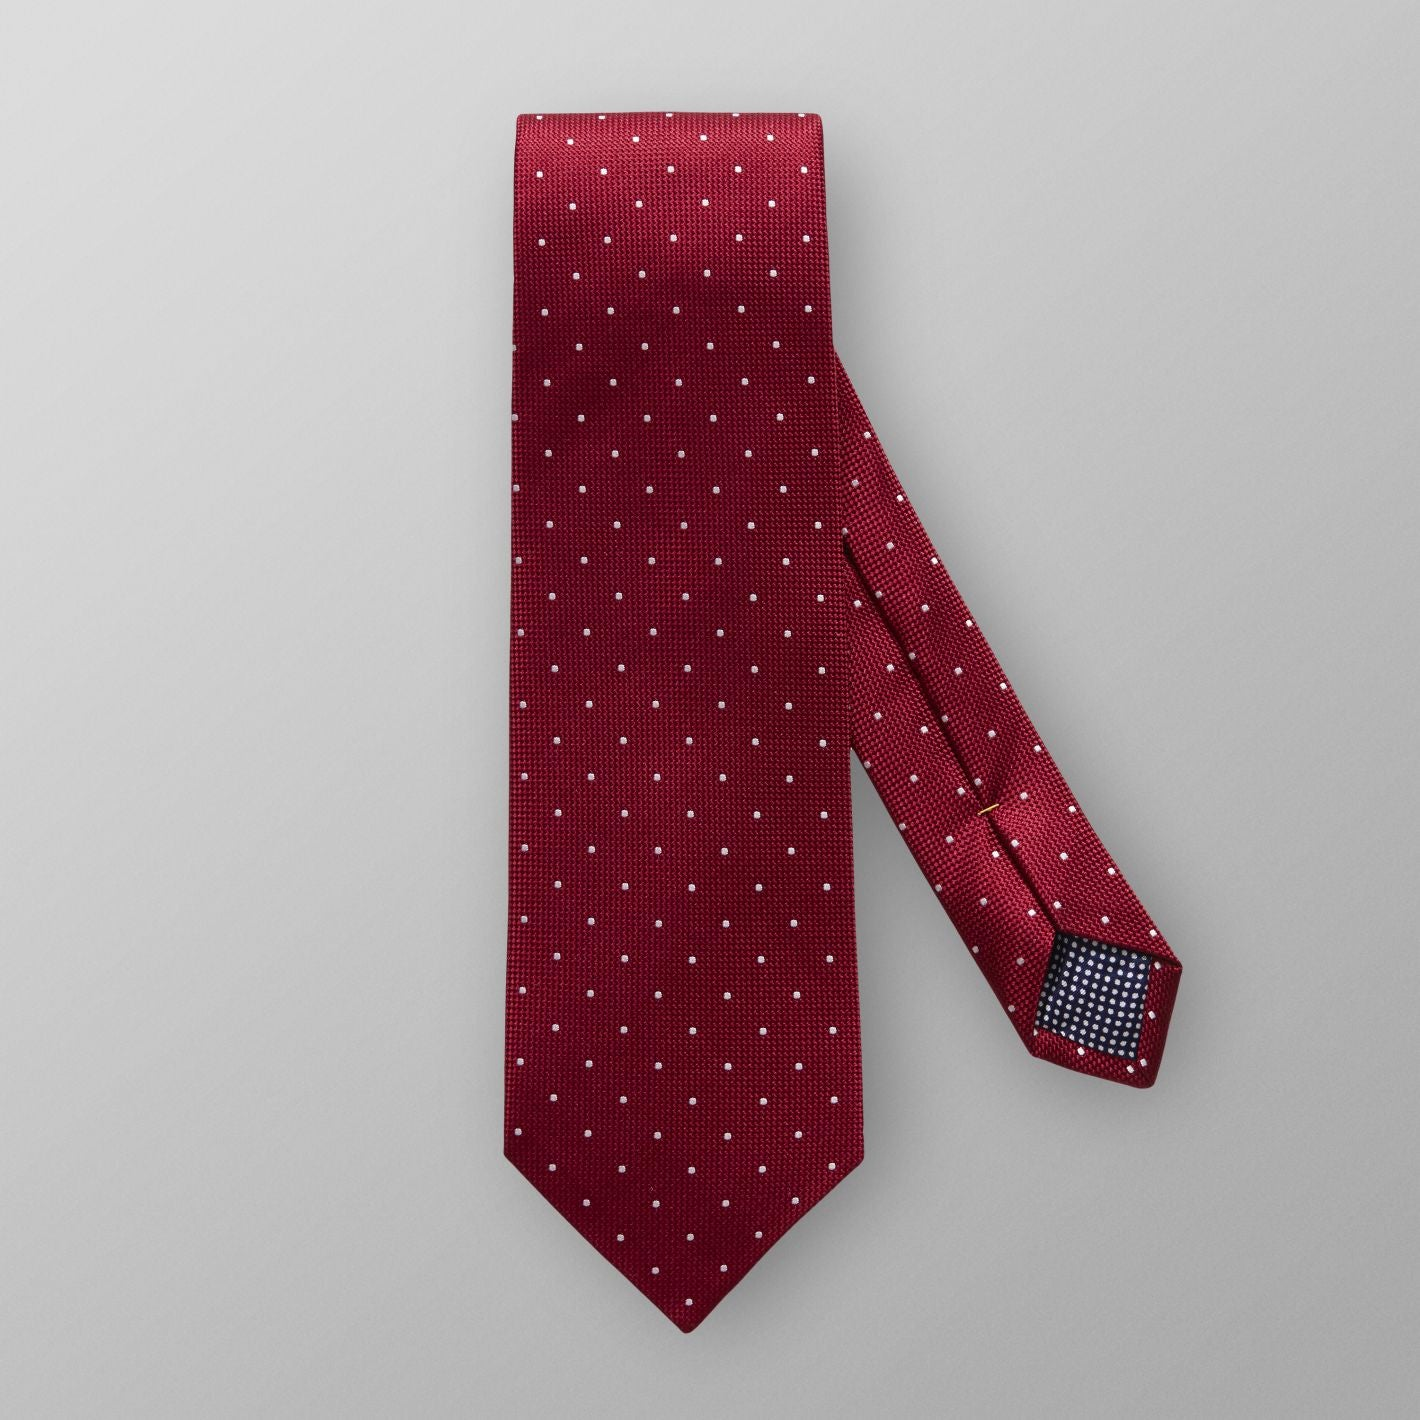 100% silk premium quality made in England men's dot tie Red